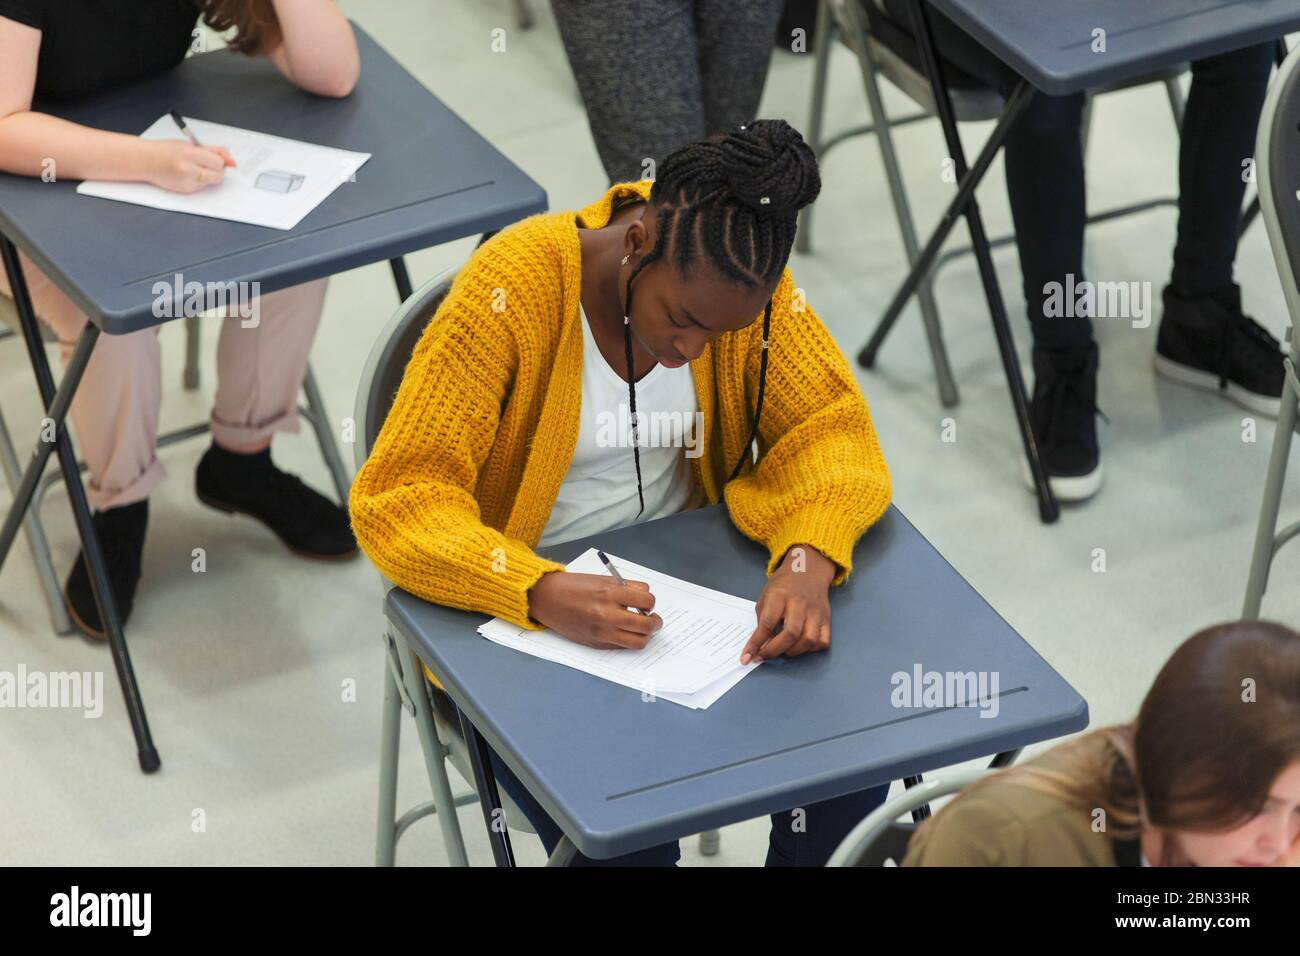 Focused high school girl student taking exam at desk in classroom Stock Photo